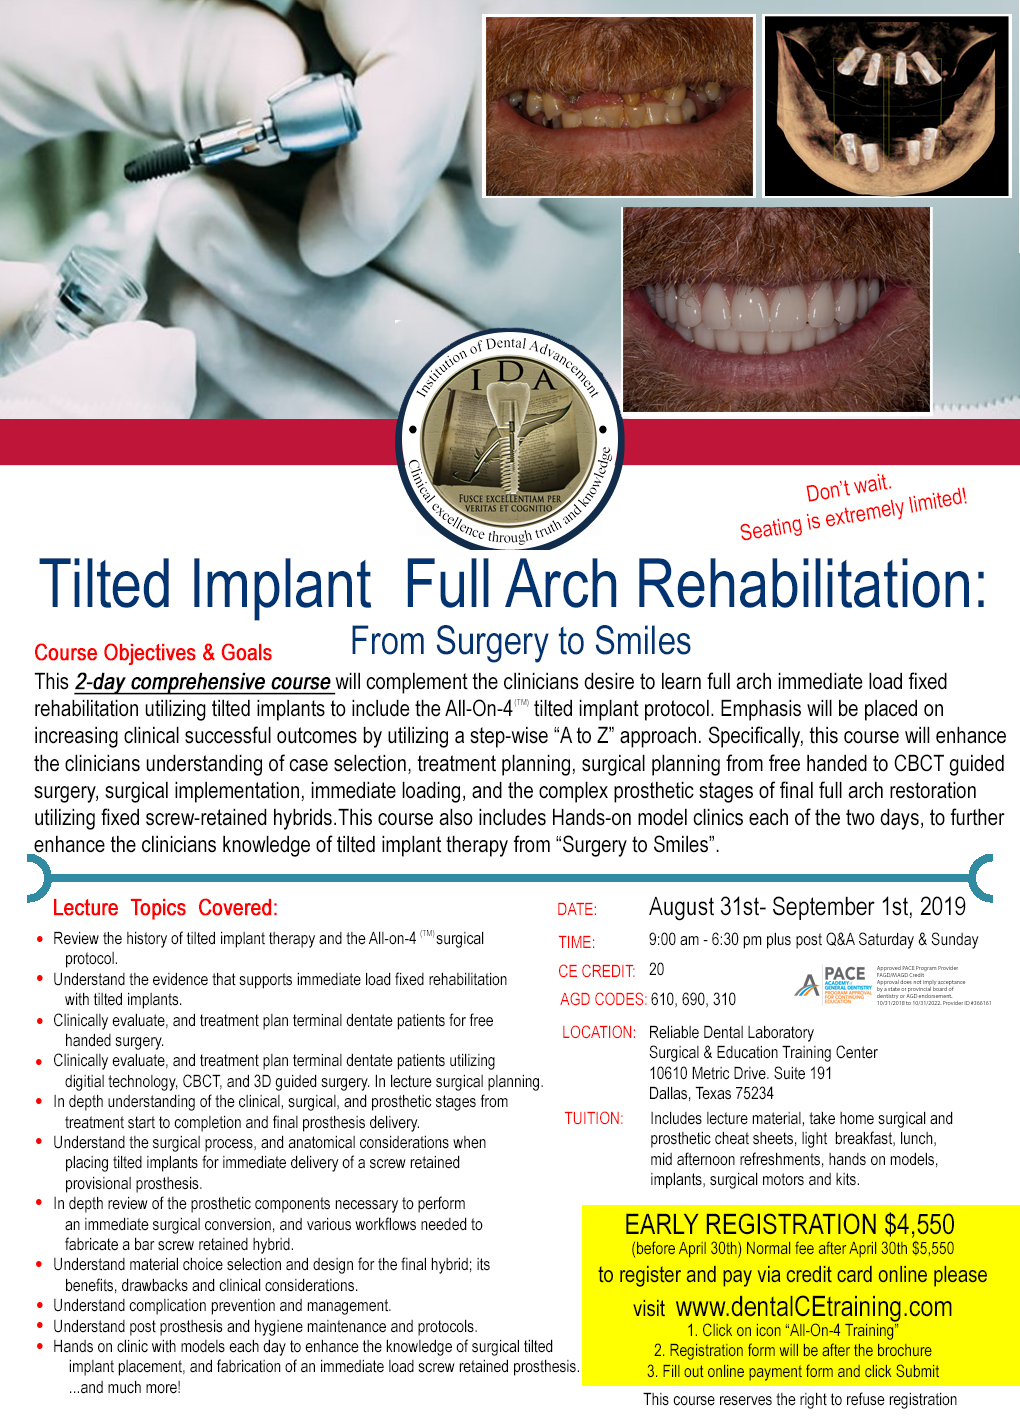 All on 4 dental implant course training